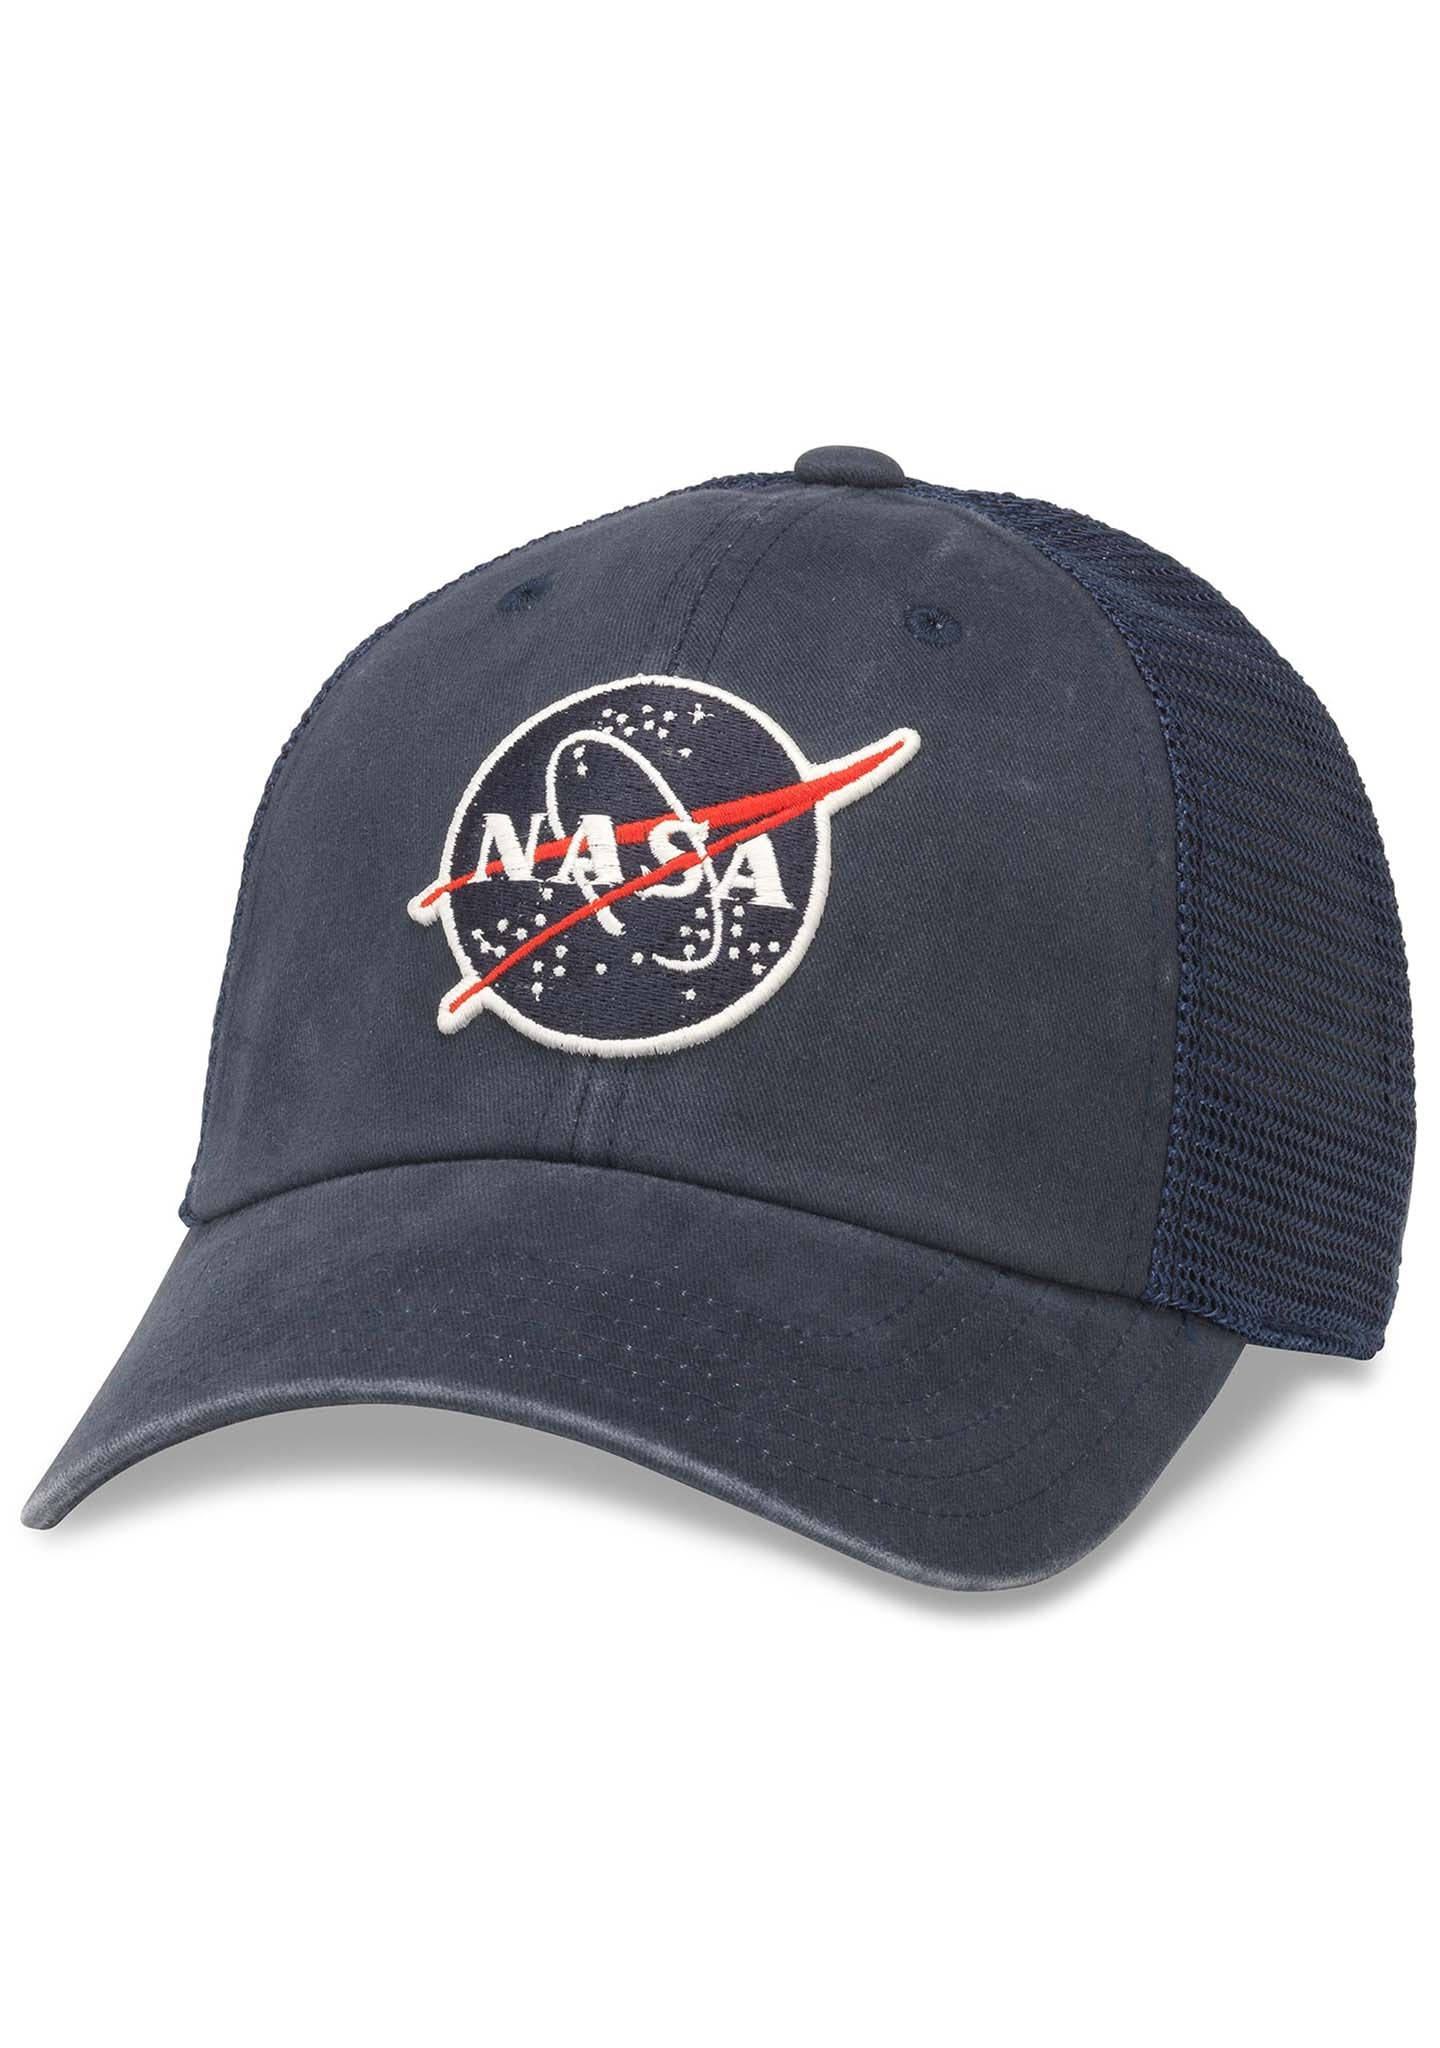 NASA Raglan Bones Hat in Navy